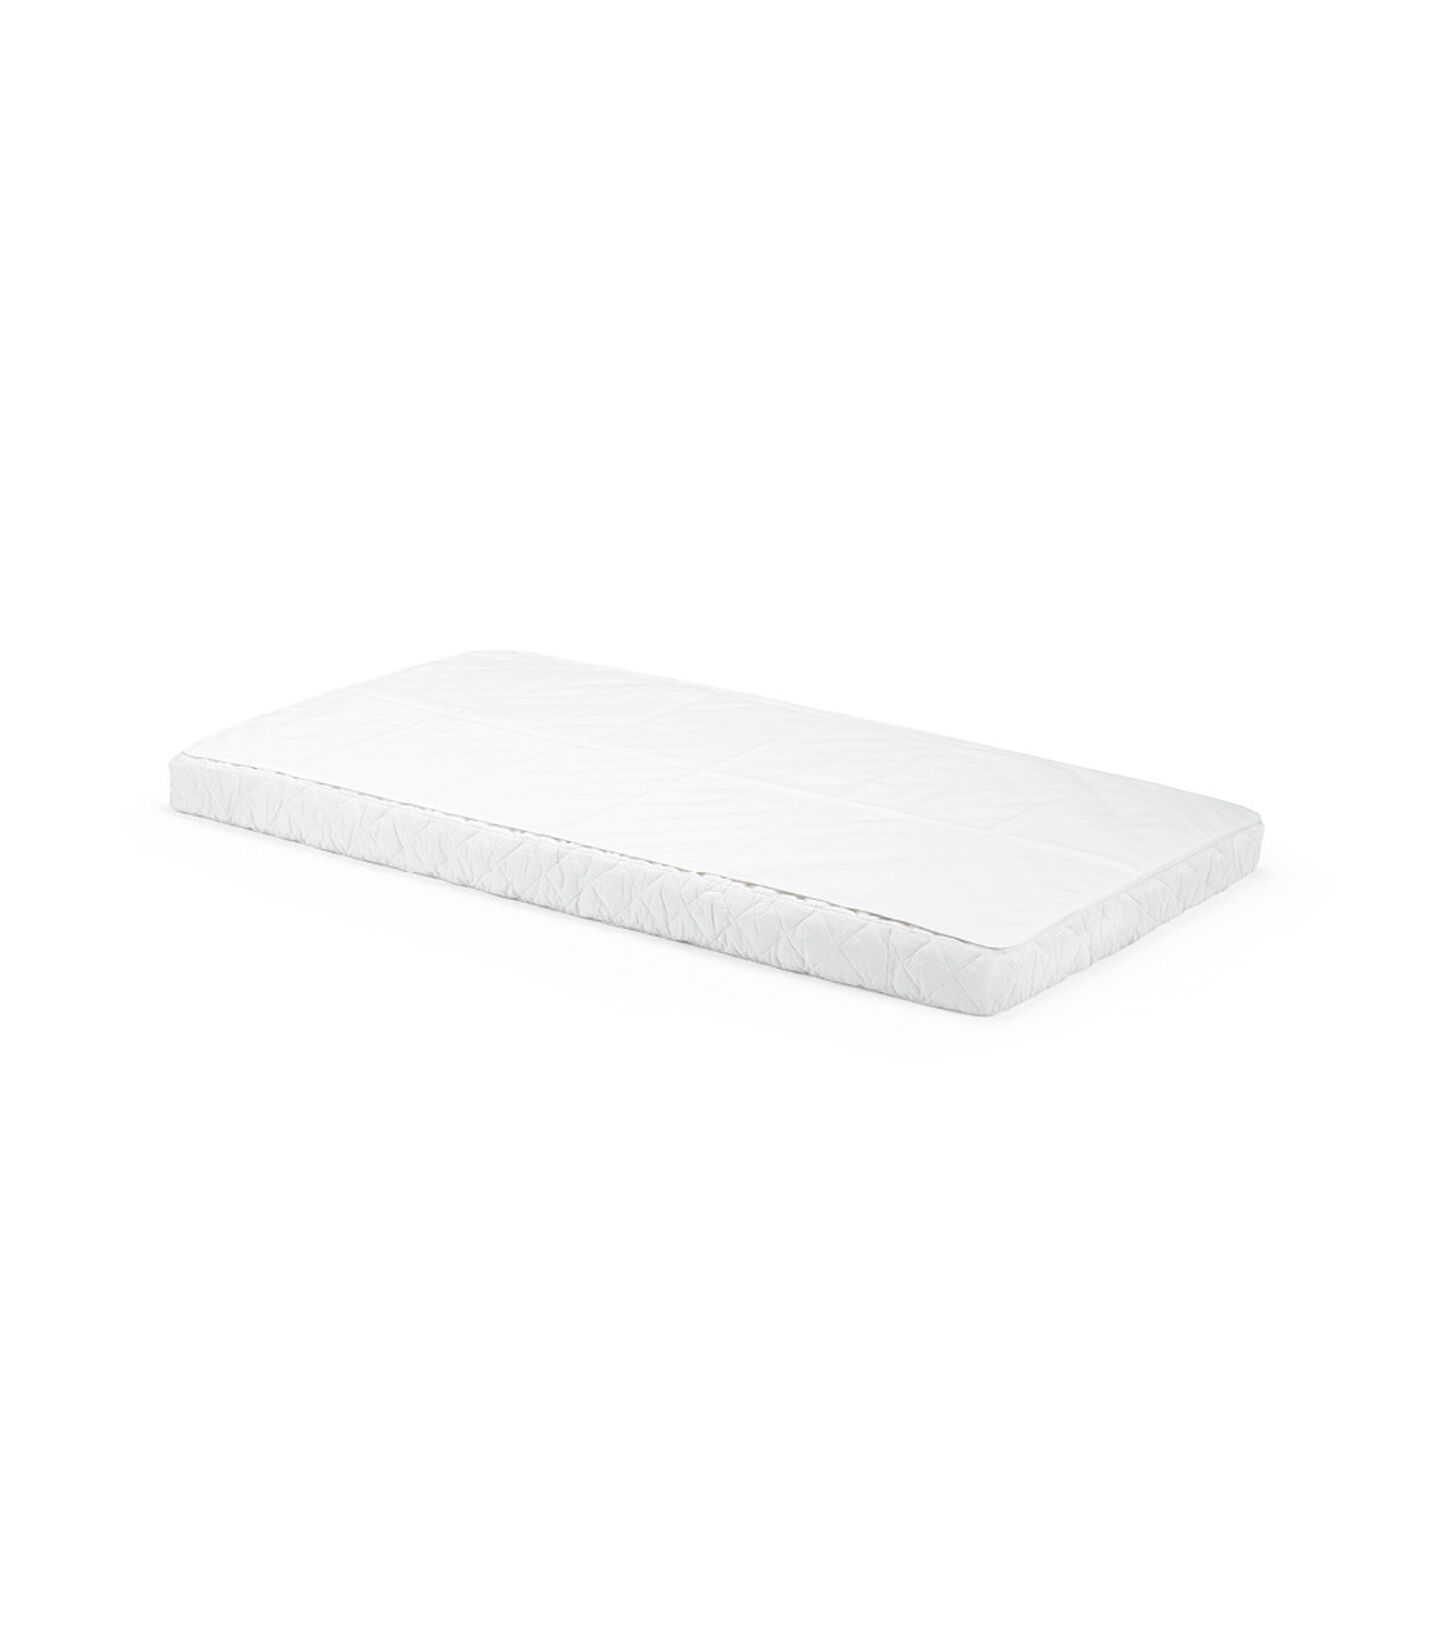 Stokke® Home™ Crib Protection Sheet, , mainview view 2